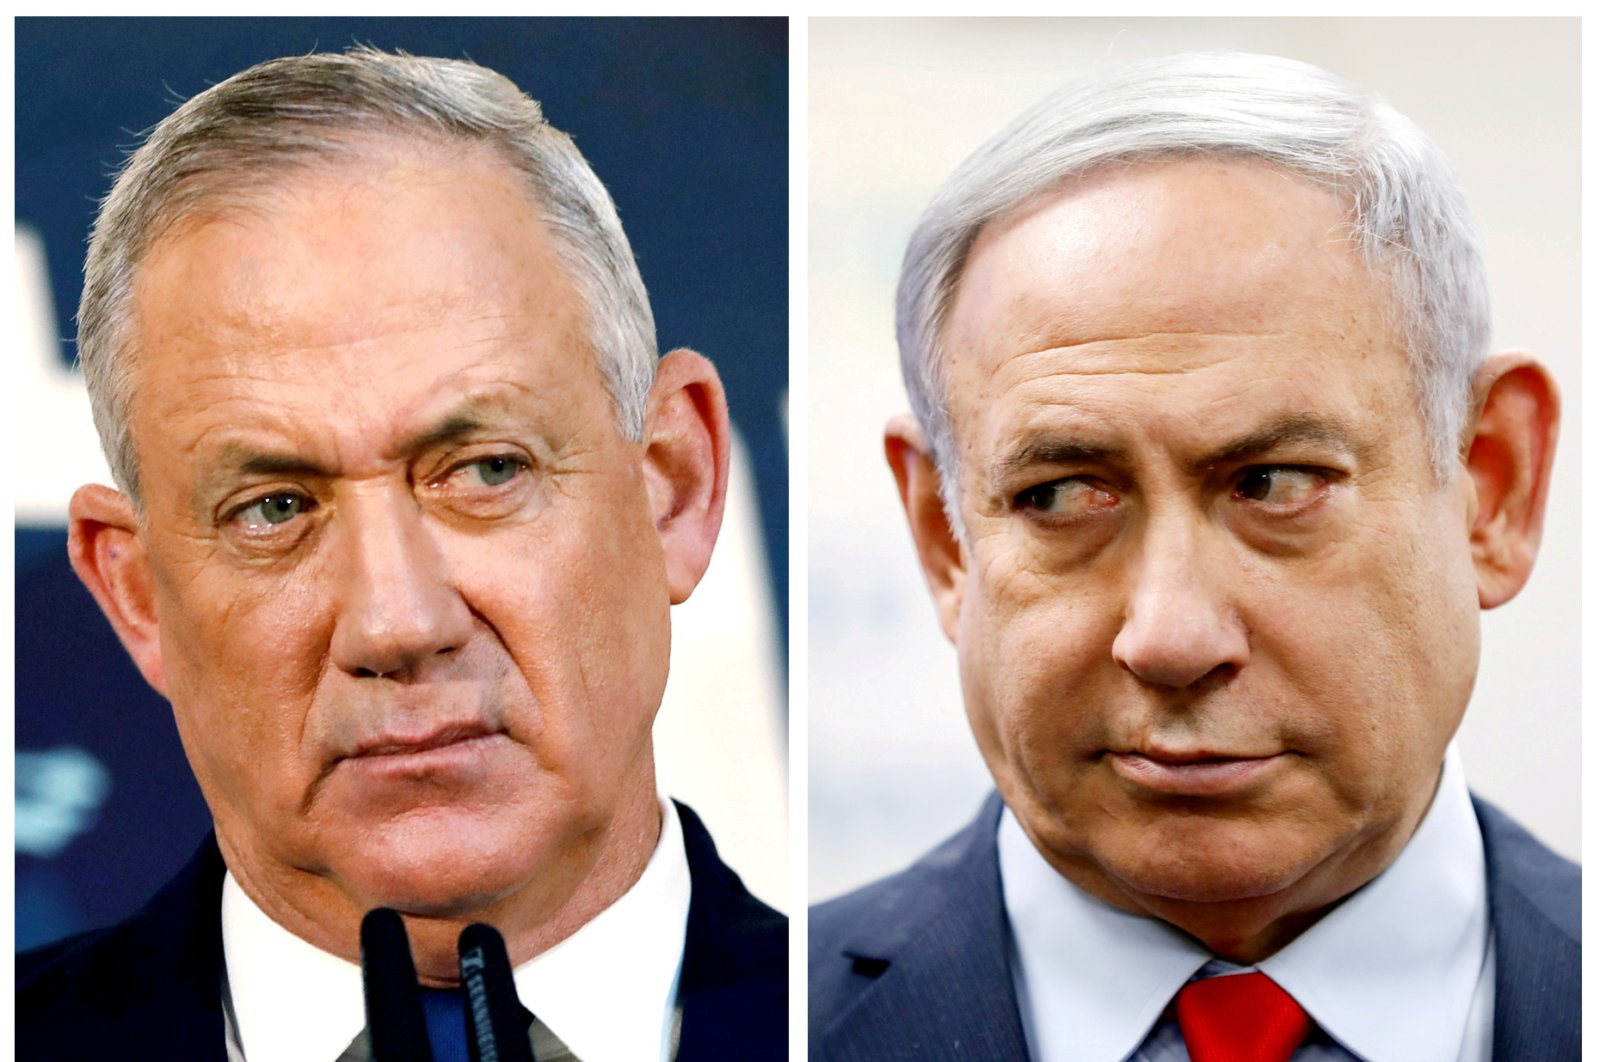 A combination picture shows Benny Gantz, leader of Blue and White party, in Tel Aviv, Nov. 23, 2019 and Israeli Prime Minister Benjamin Netanyahu in Kiryat Malachi, March 1, 2020. (REUTERS Photo)